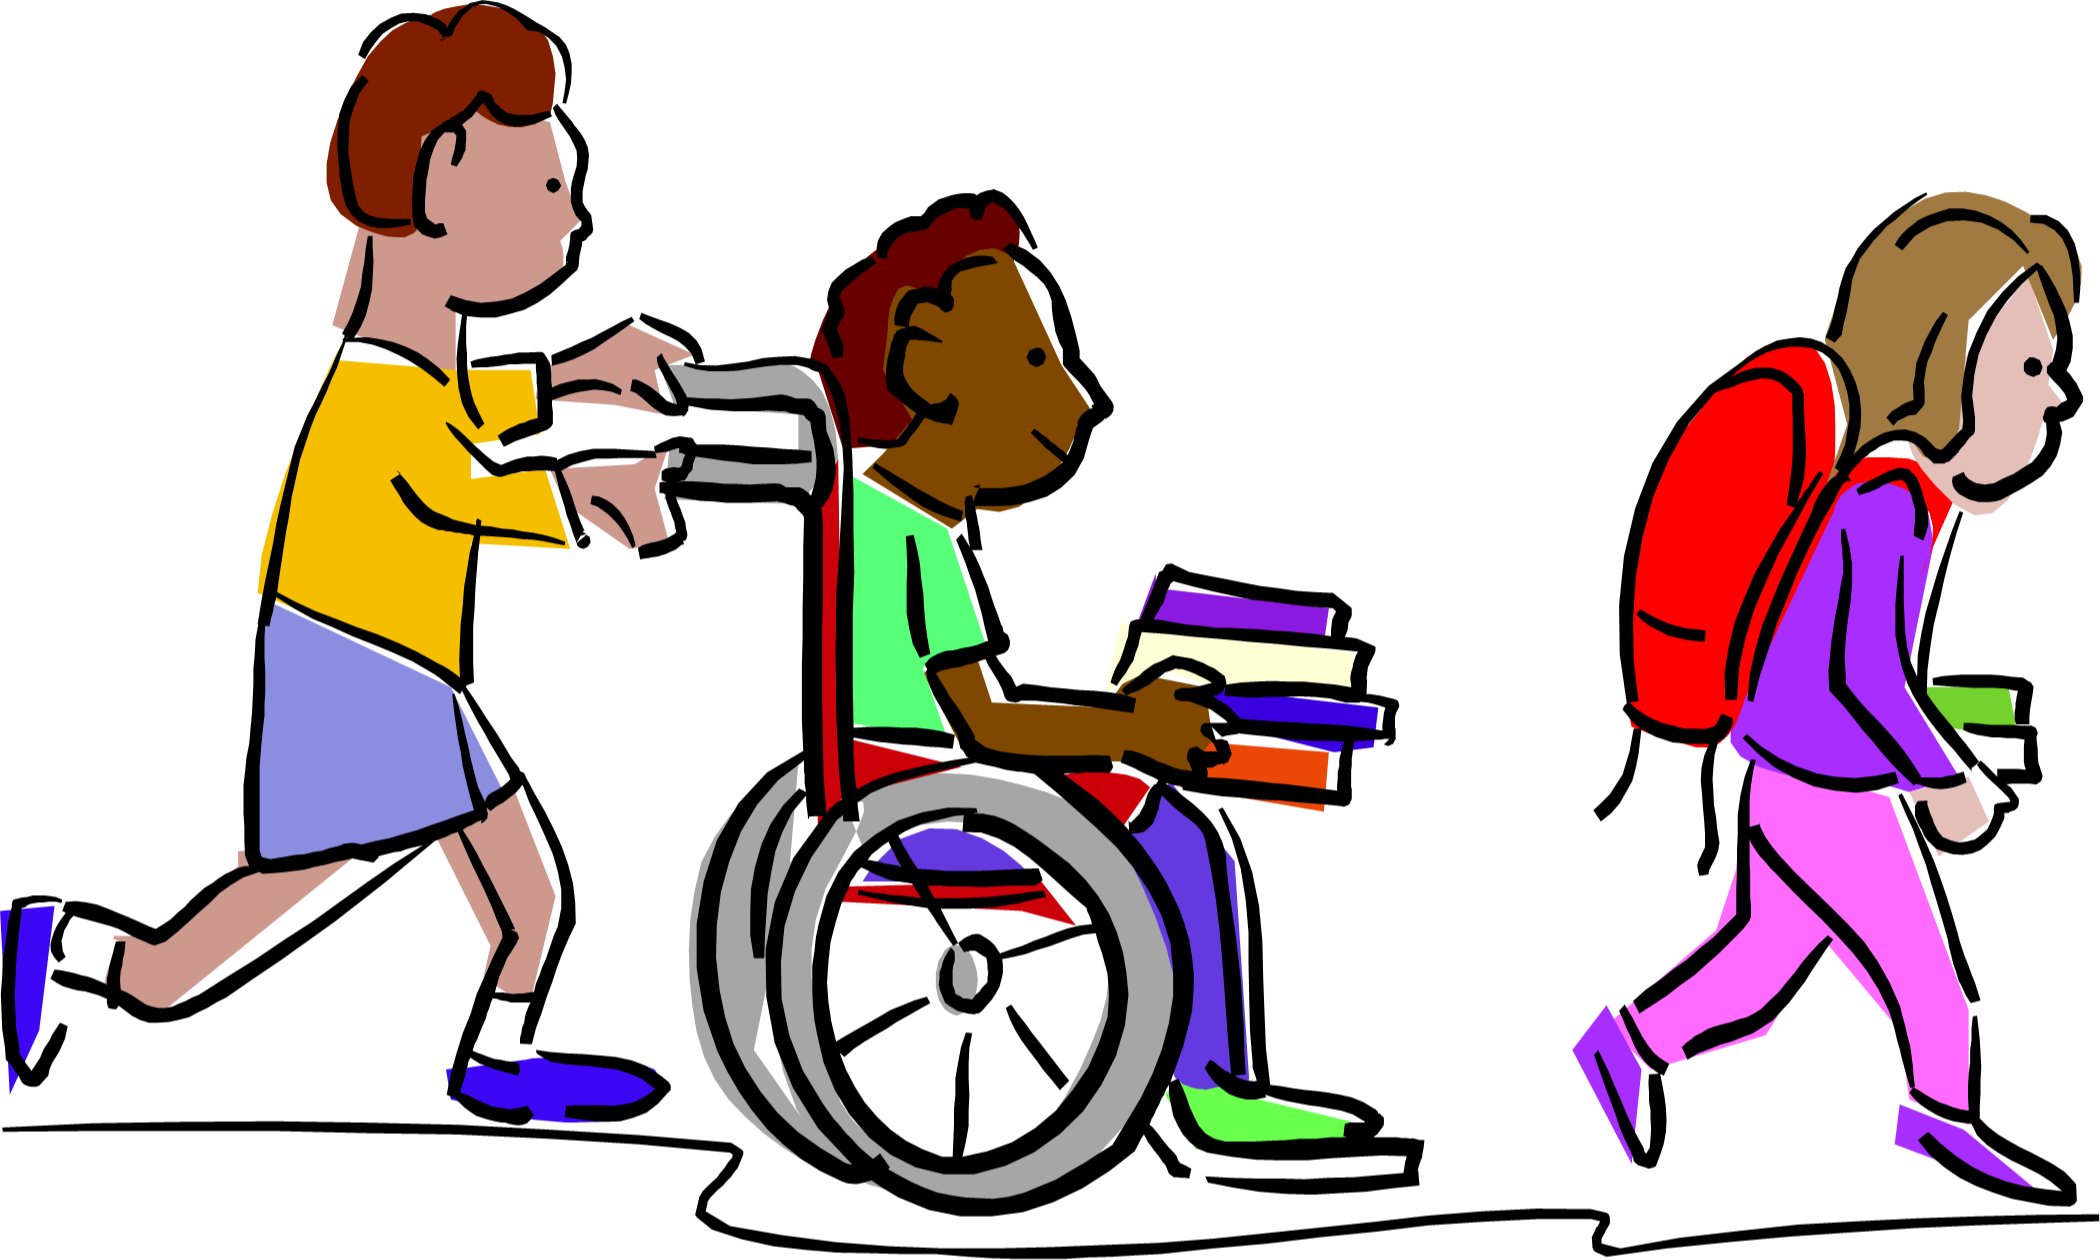 Clip art helping others clipart images gallery for free download.